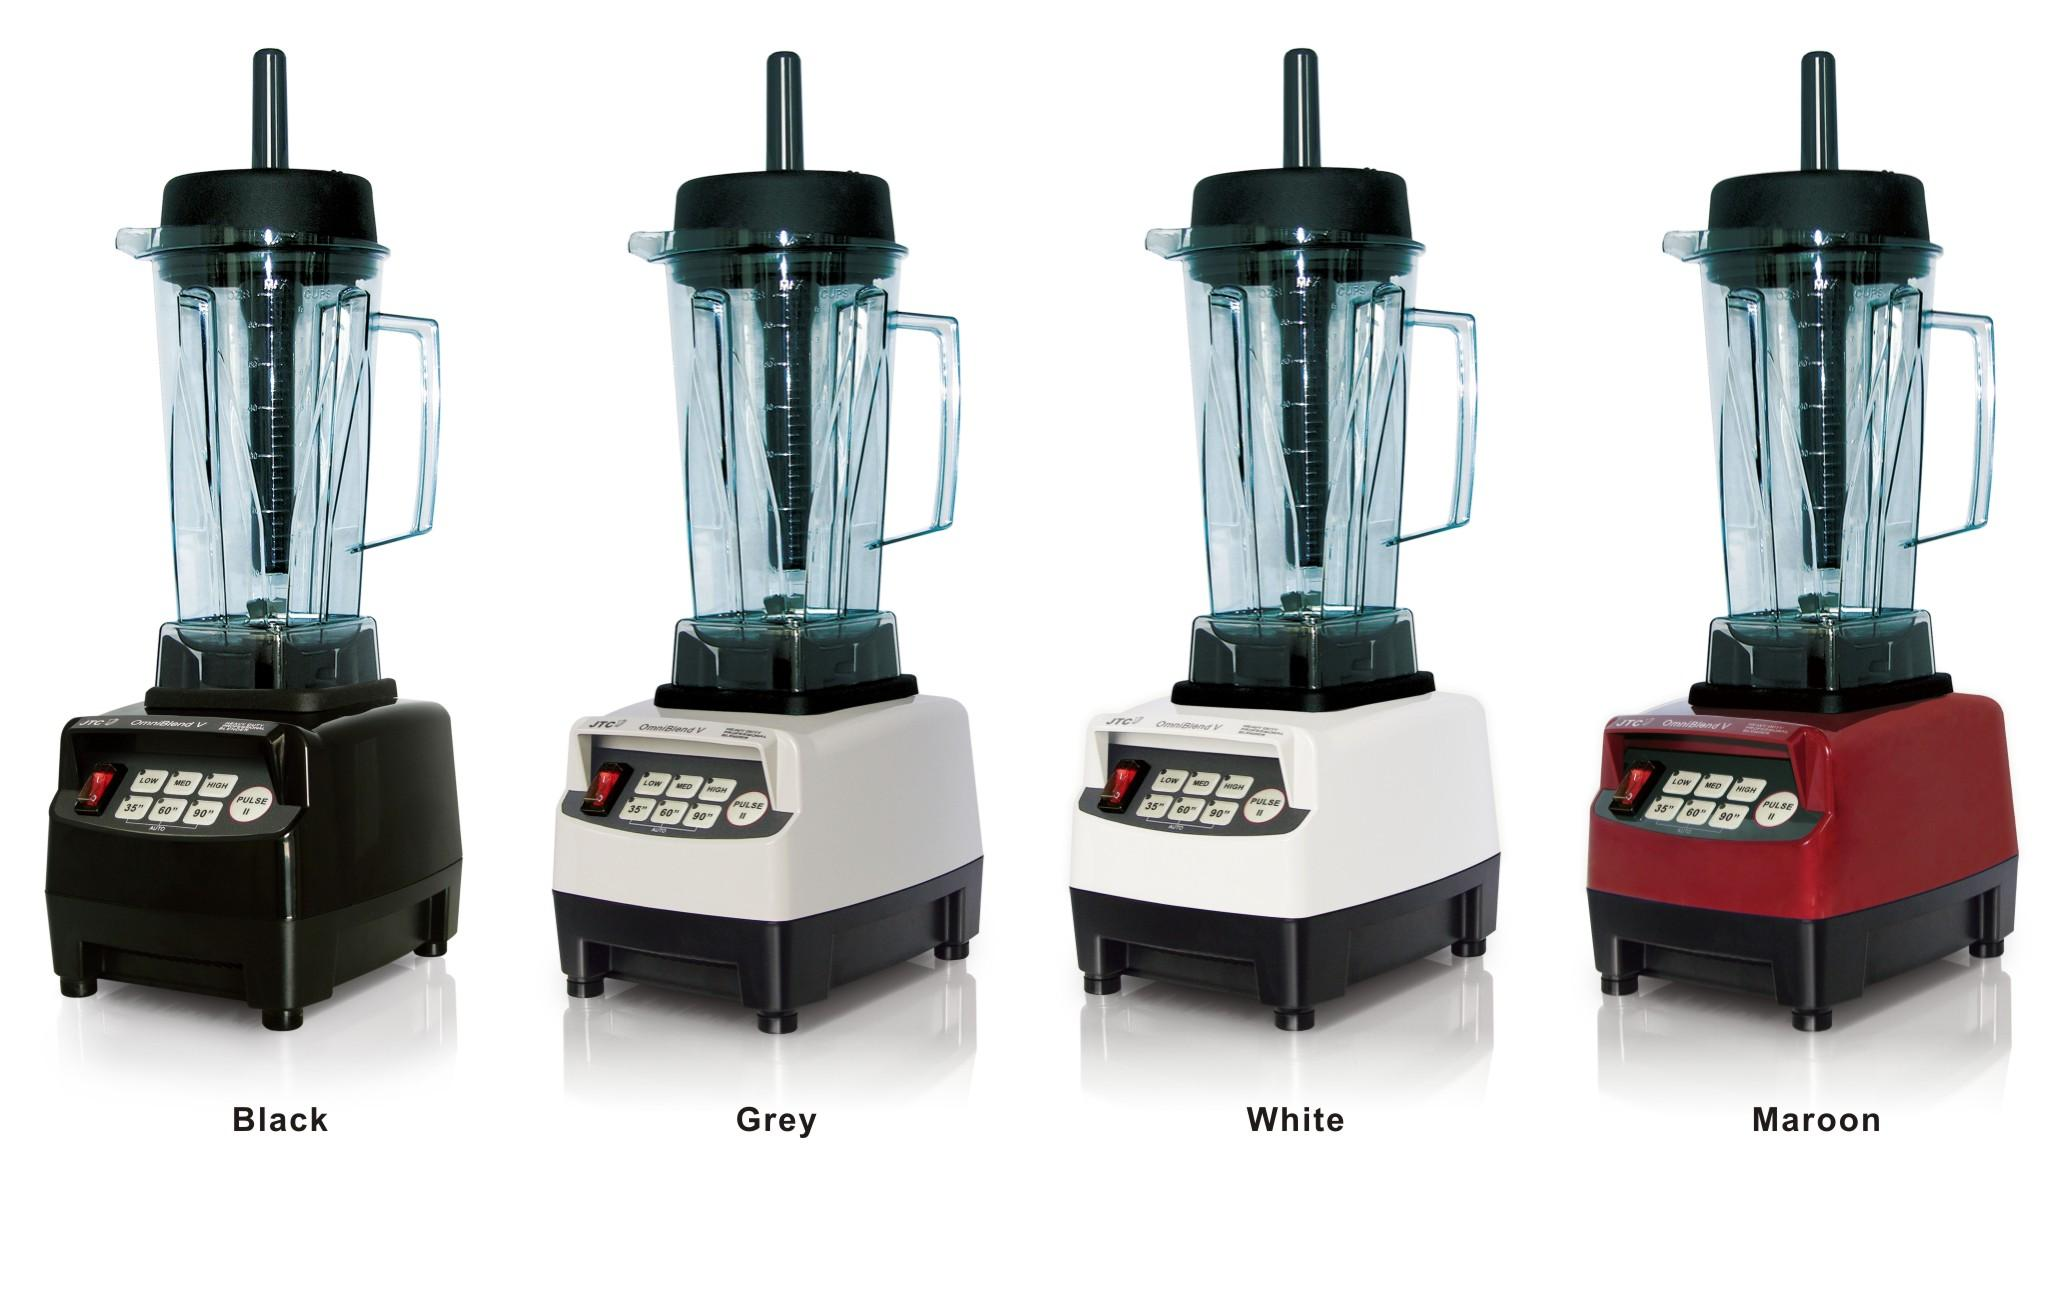 JTC Heavy duty commercial blender with PC jar, Model:TM-800, Black, FREE SHIPPING, 100% GUARANTEED NO. 1 QUALITY IN THE WORLD. блендер для сухого молока 3hp 38000 2 jtc omniblend tm 800aq tm 800aq